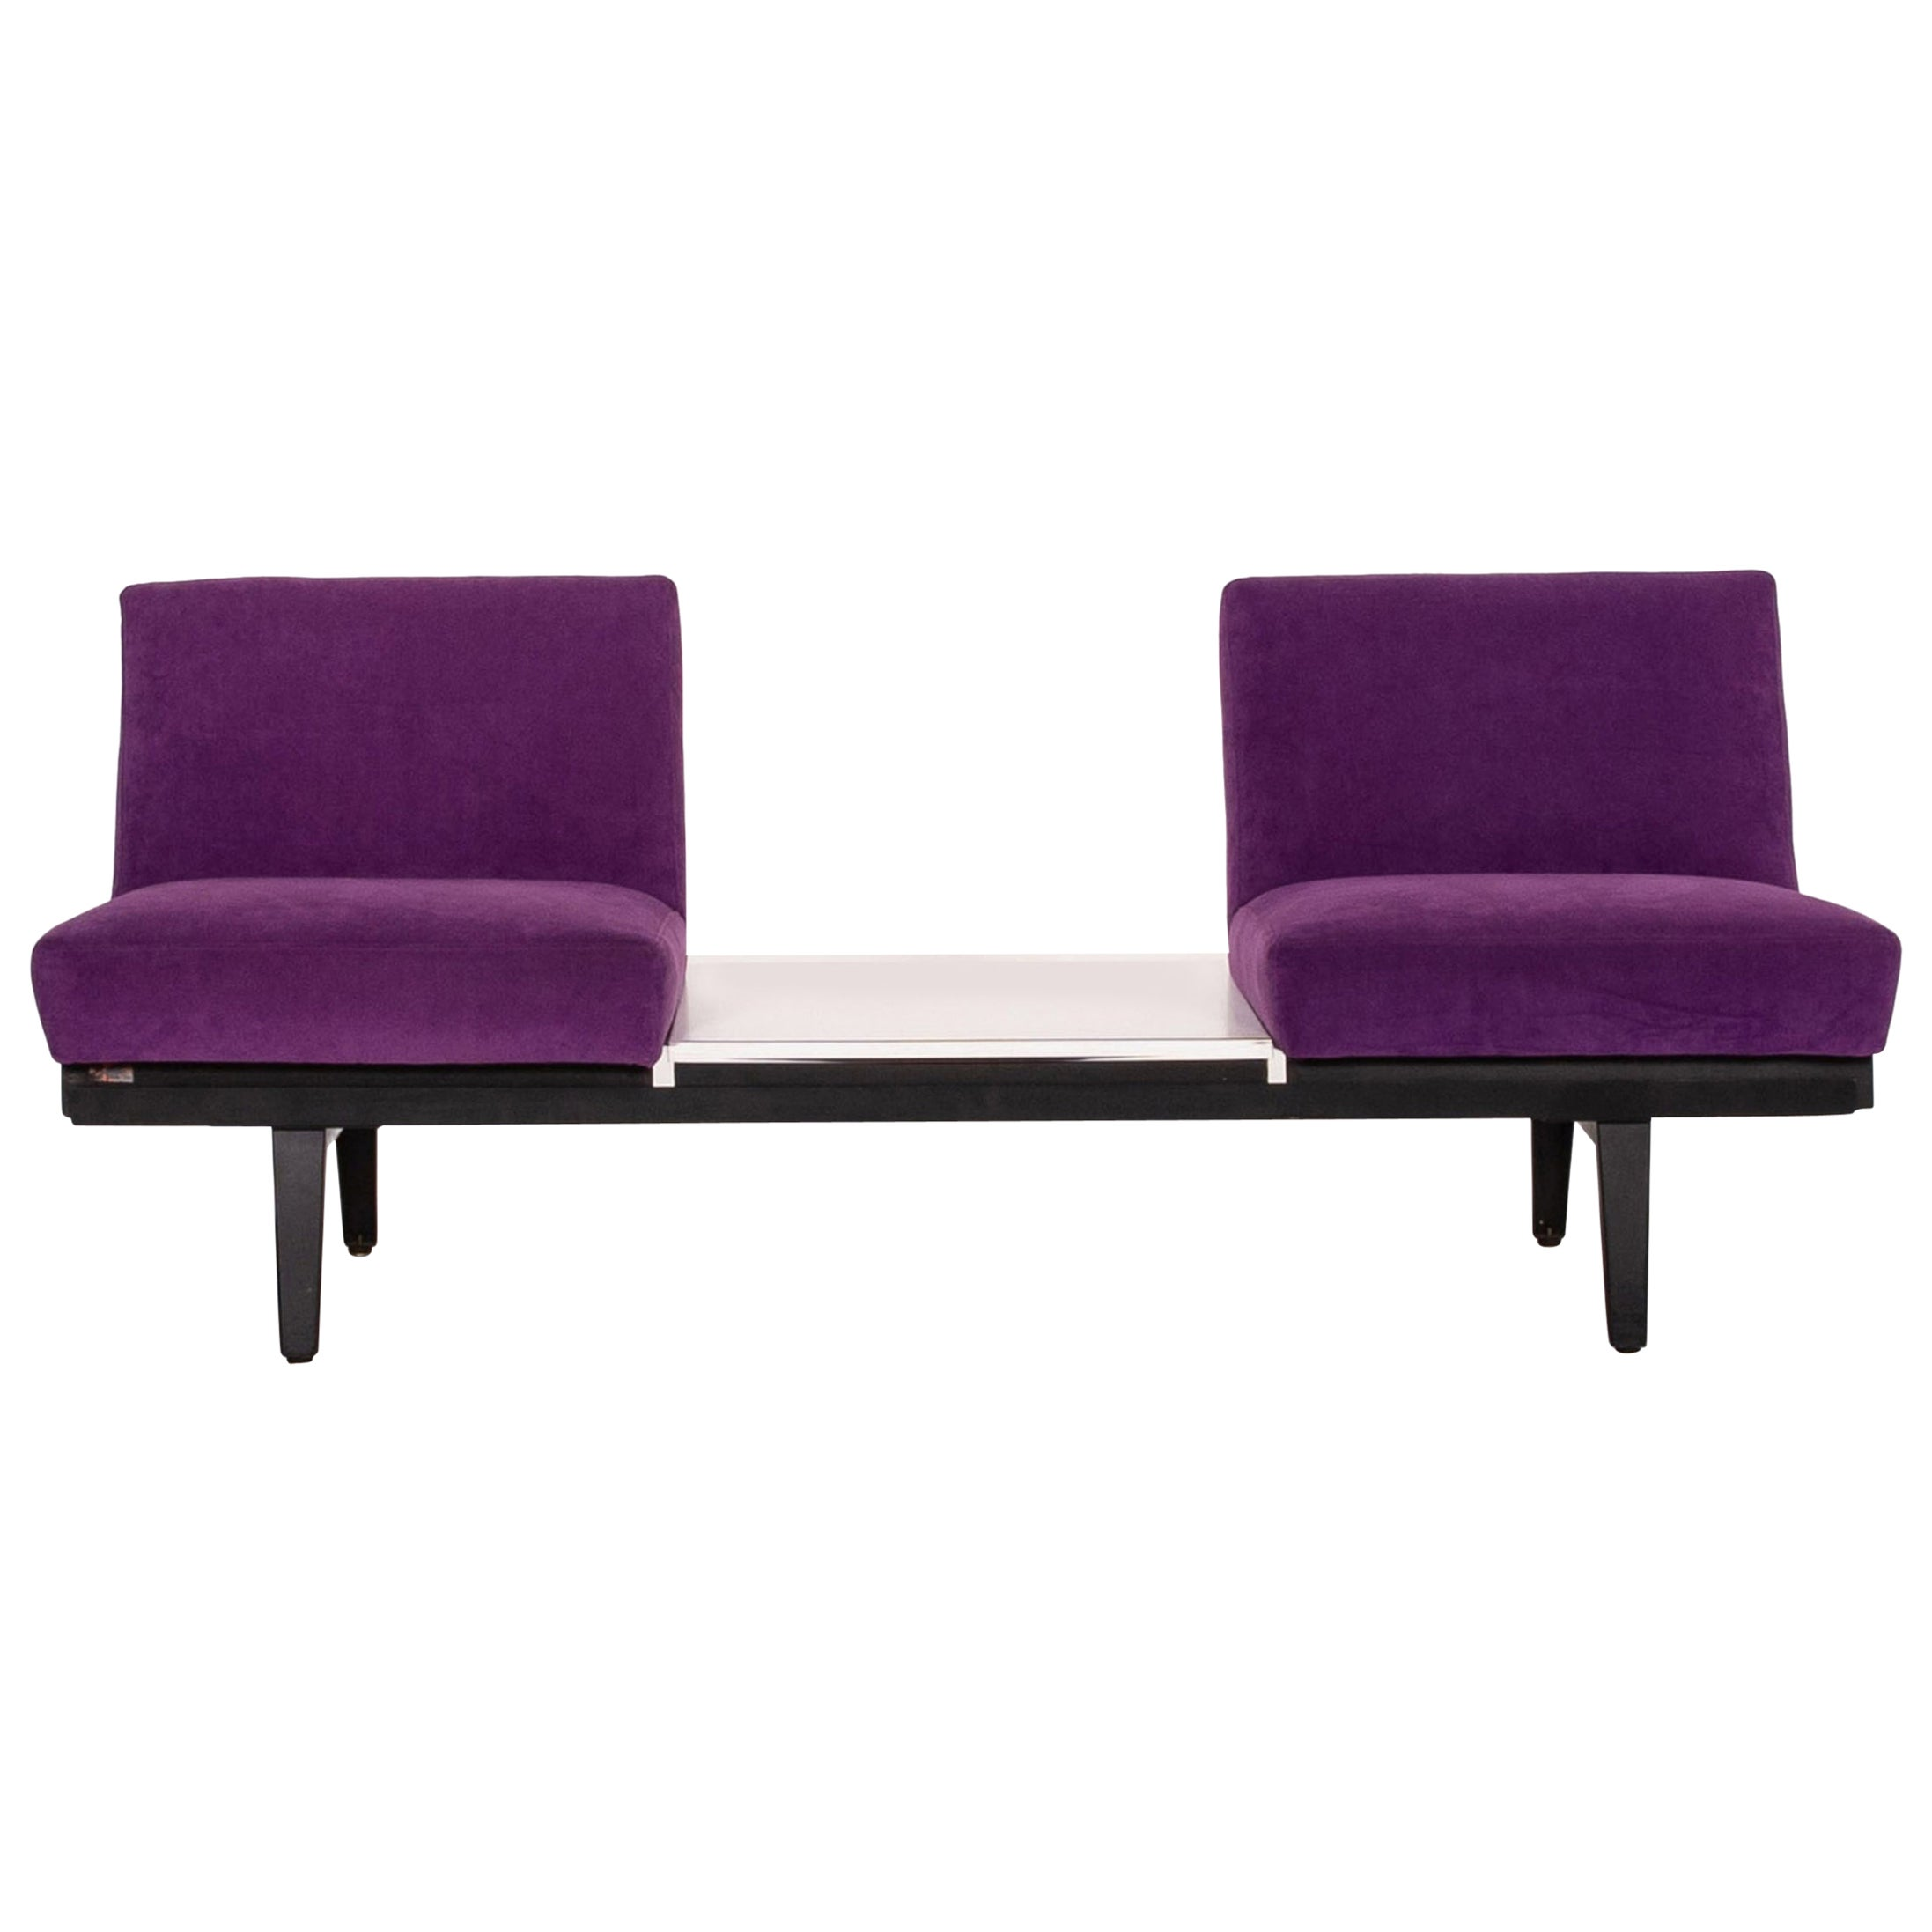 Herman Miller Fabric Sofa Purple Two-Seat Couch